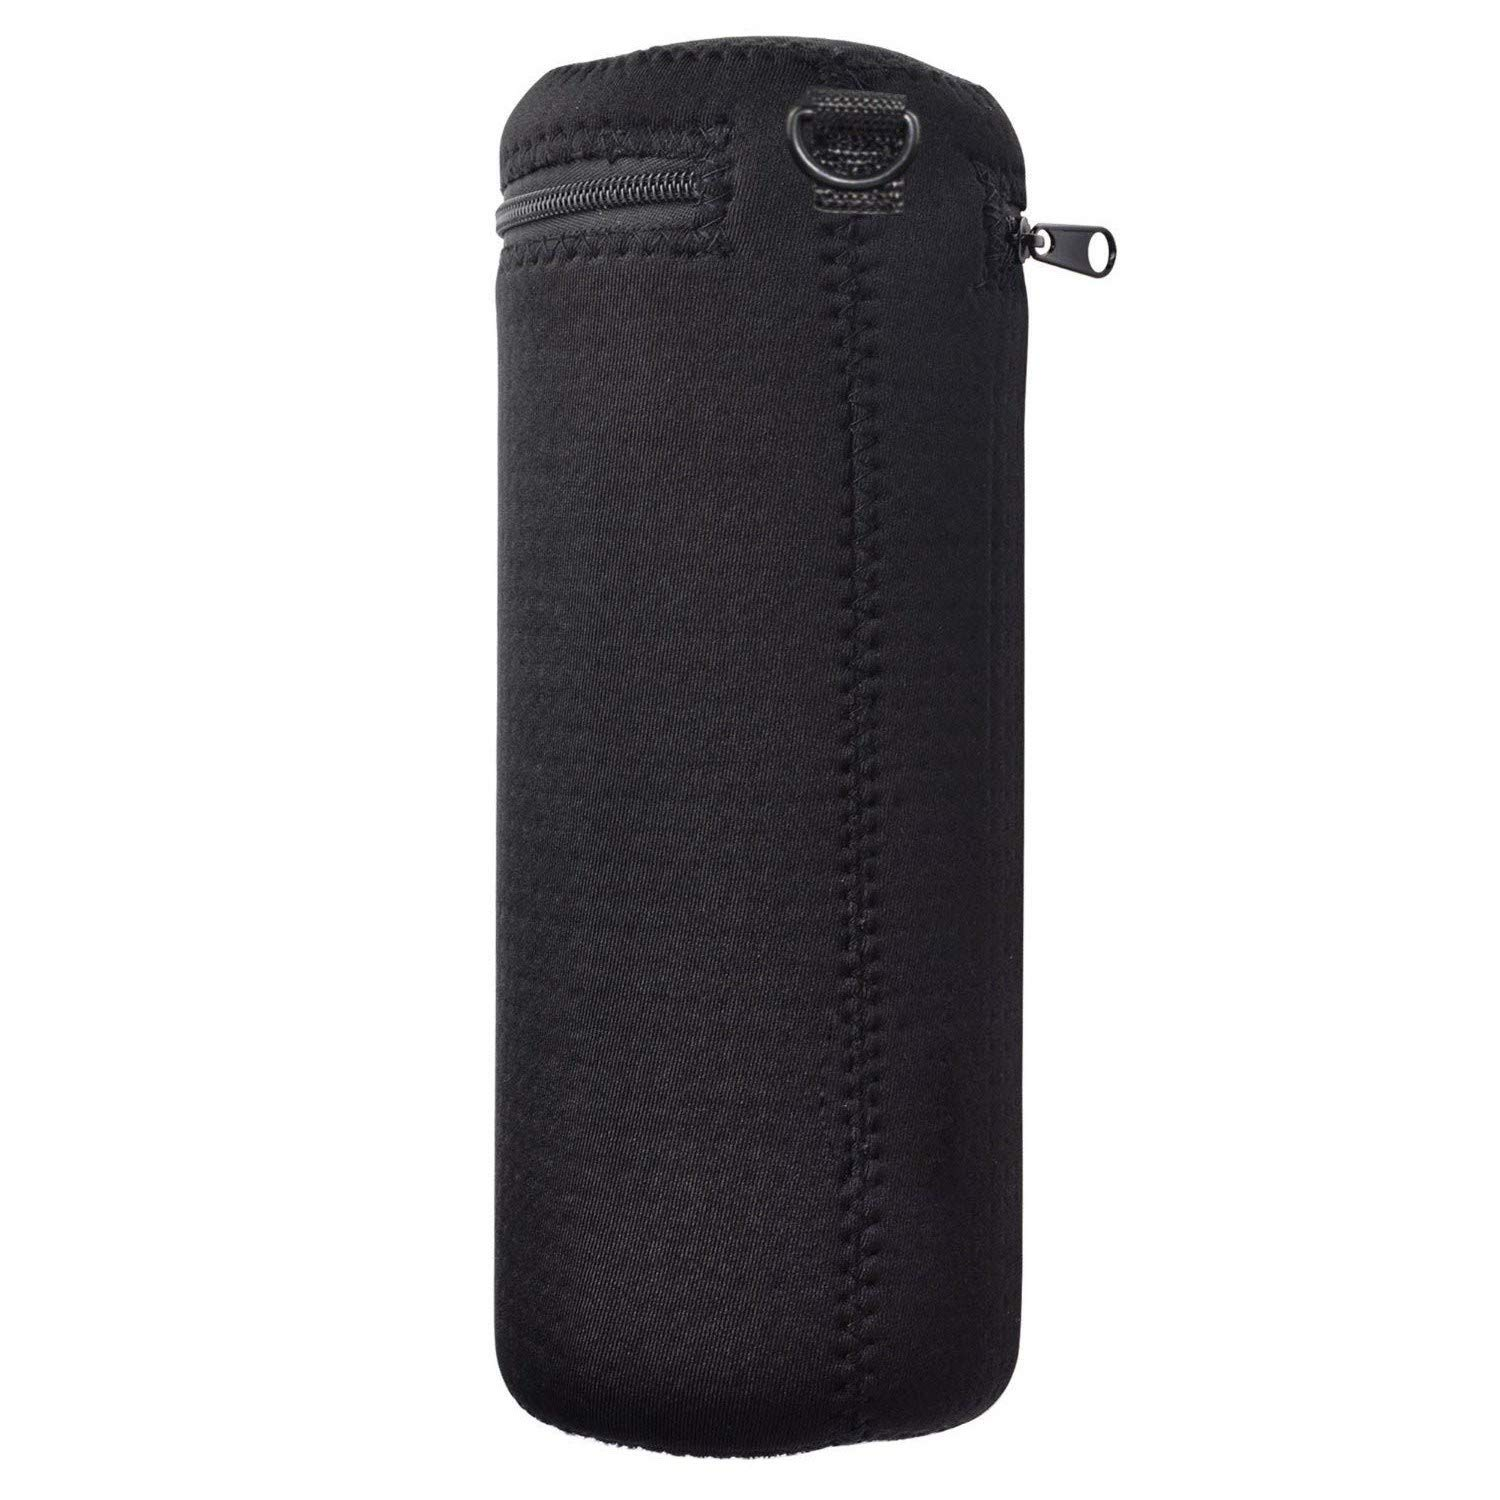 Black Color Soft Neoprene Carrying Case Portable Protection Travel Sleeve Cover Pouch Bags for Ultimate Ears MEGABOOM 3 Portable Bluetooth Wireless Speaker